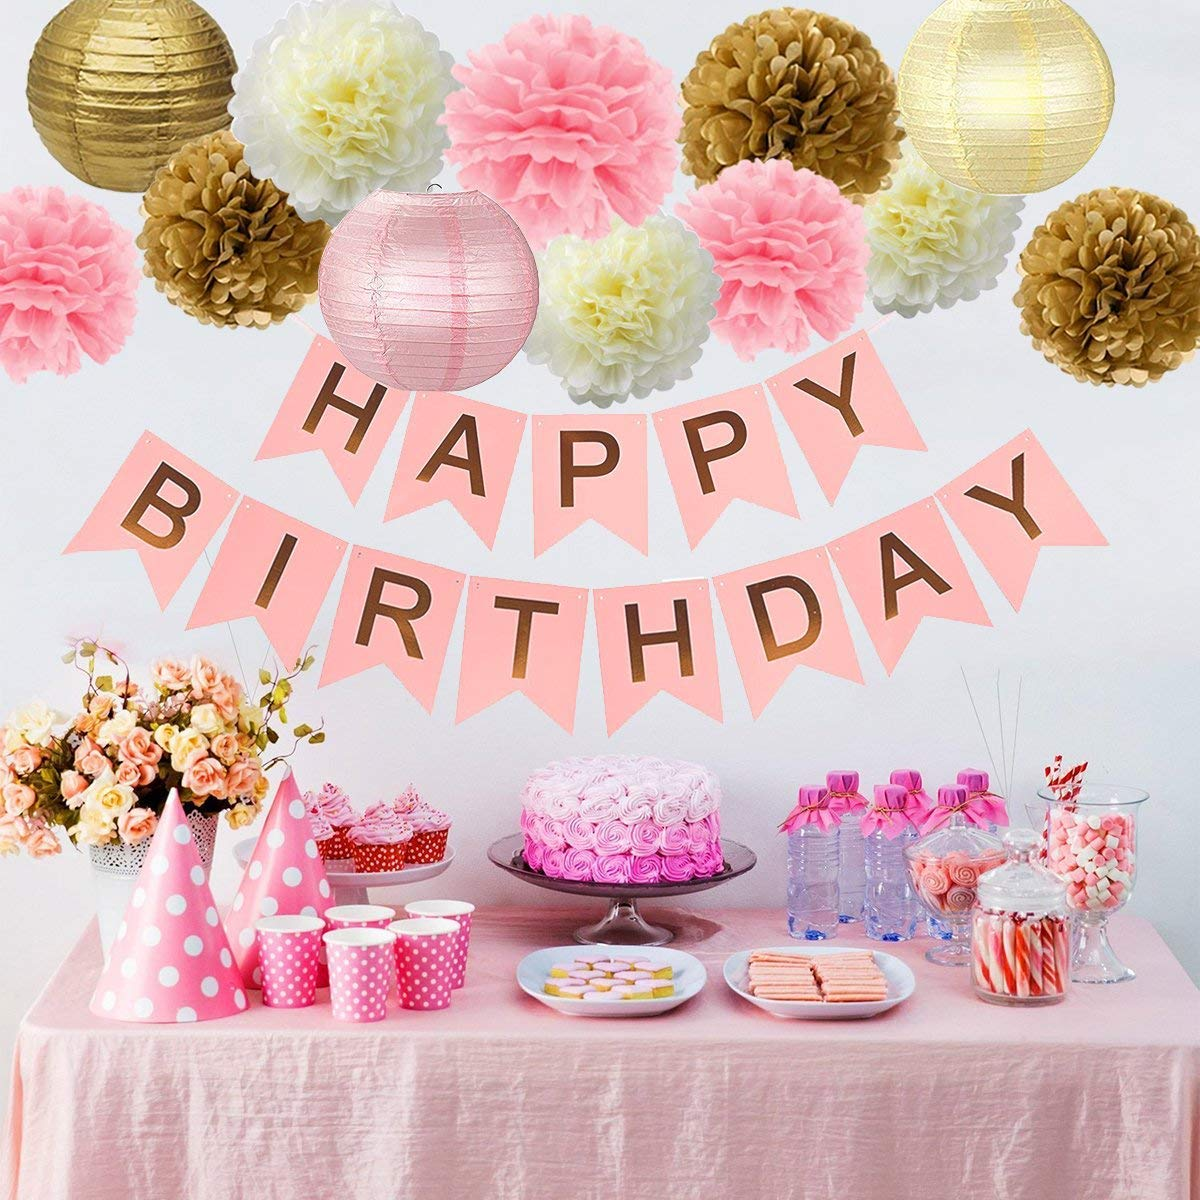 Zica Pink And Gold Birthday Party Decorations Decor Supplies First 1st Girl Decors Kit Pom Lanterns Polka Dot Triangle Garland